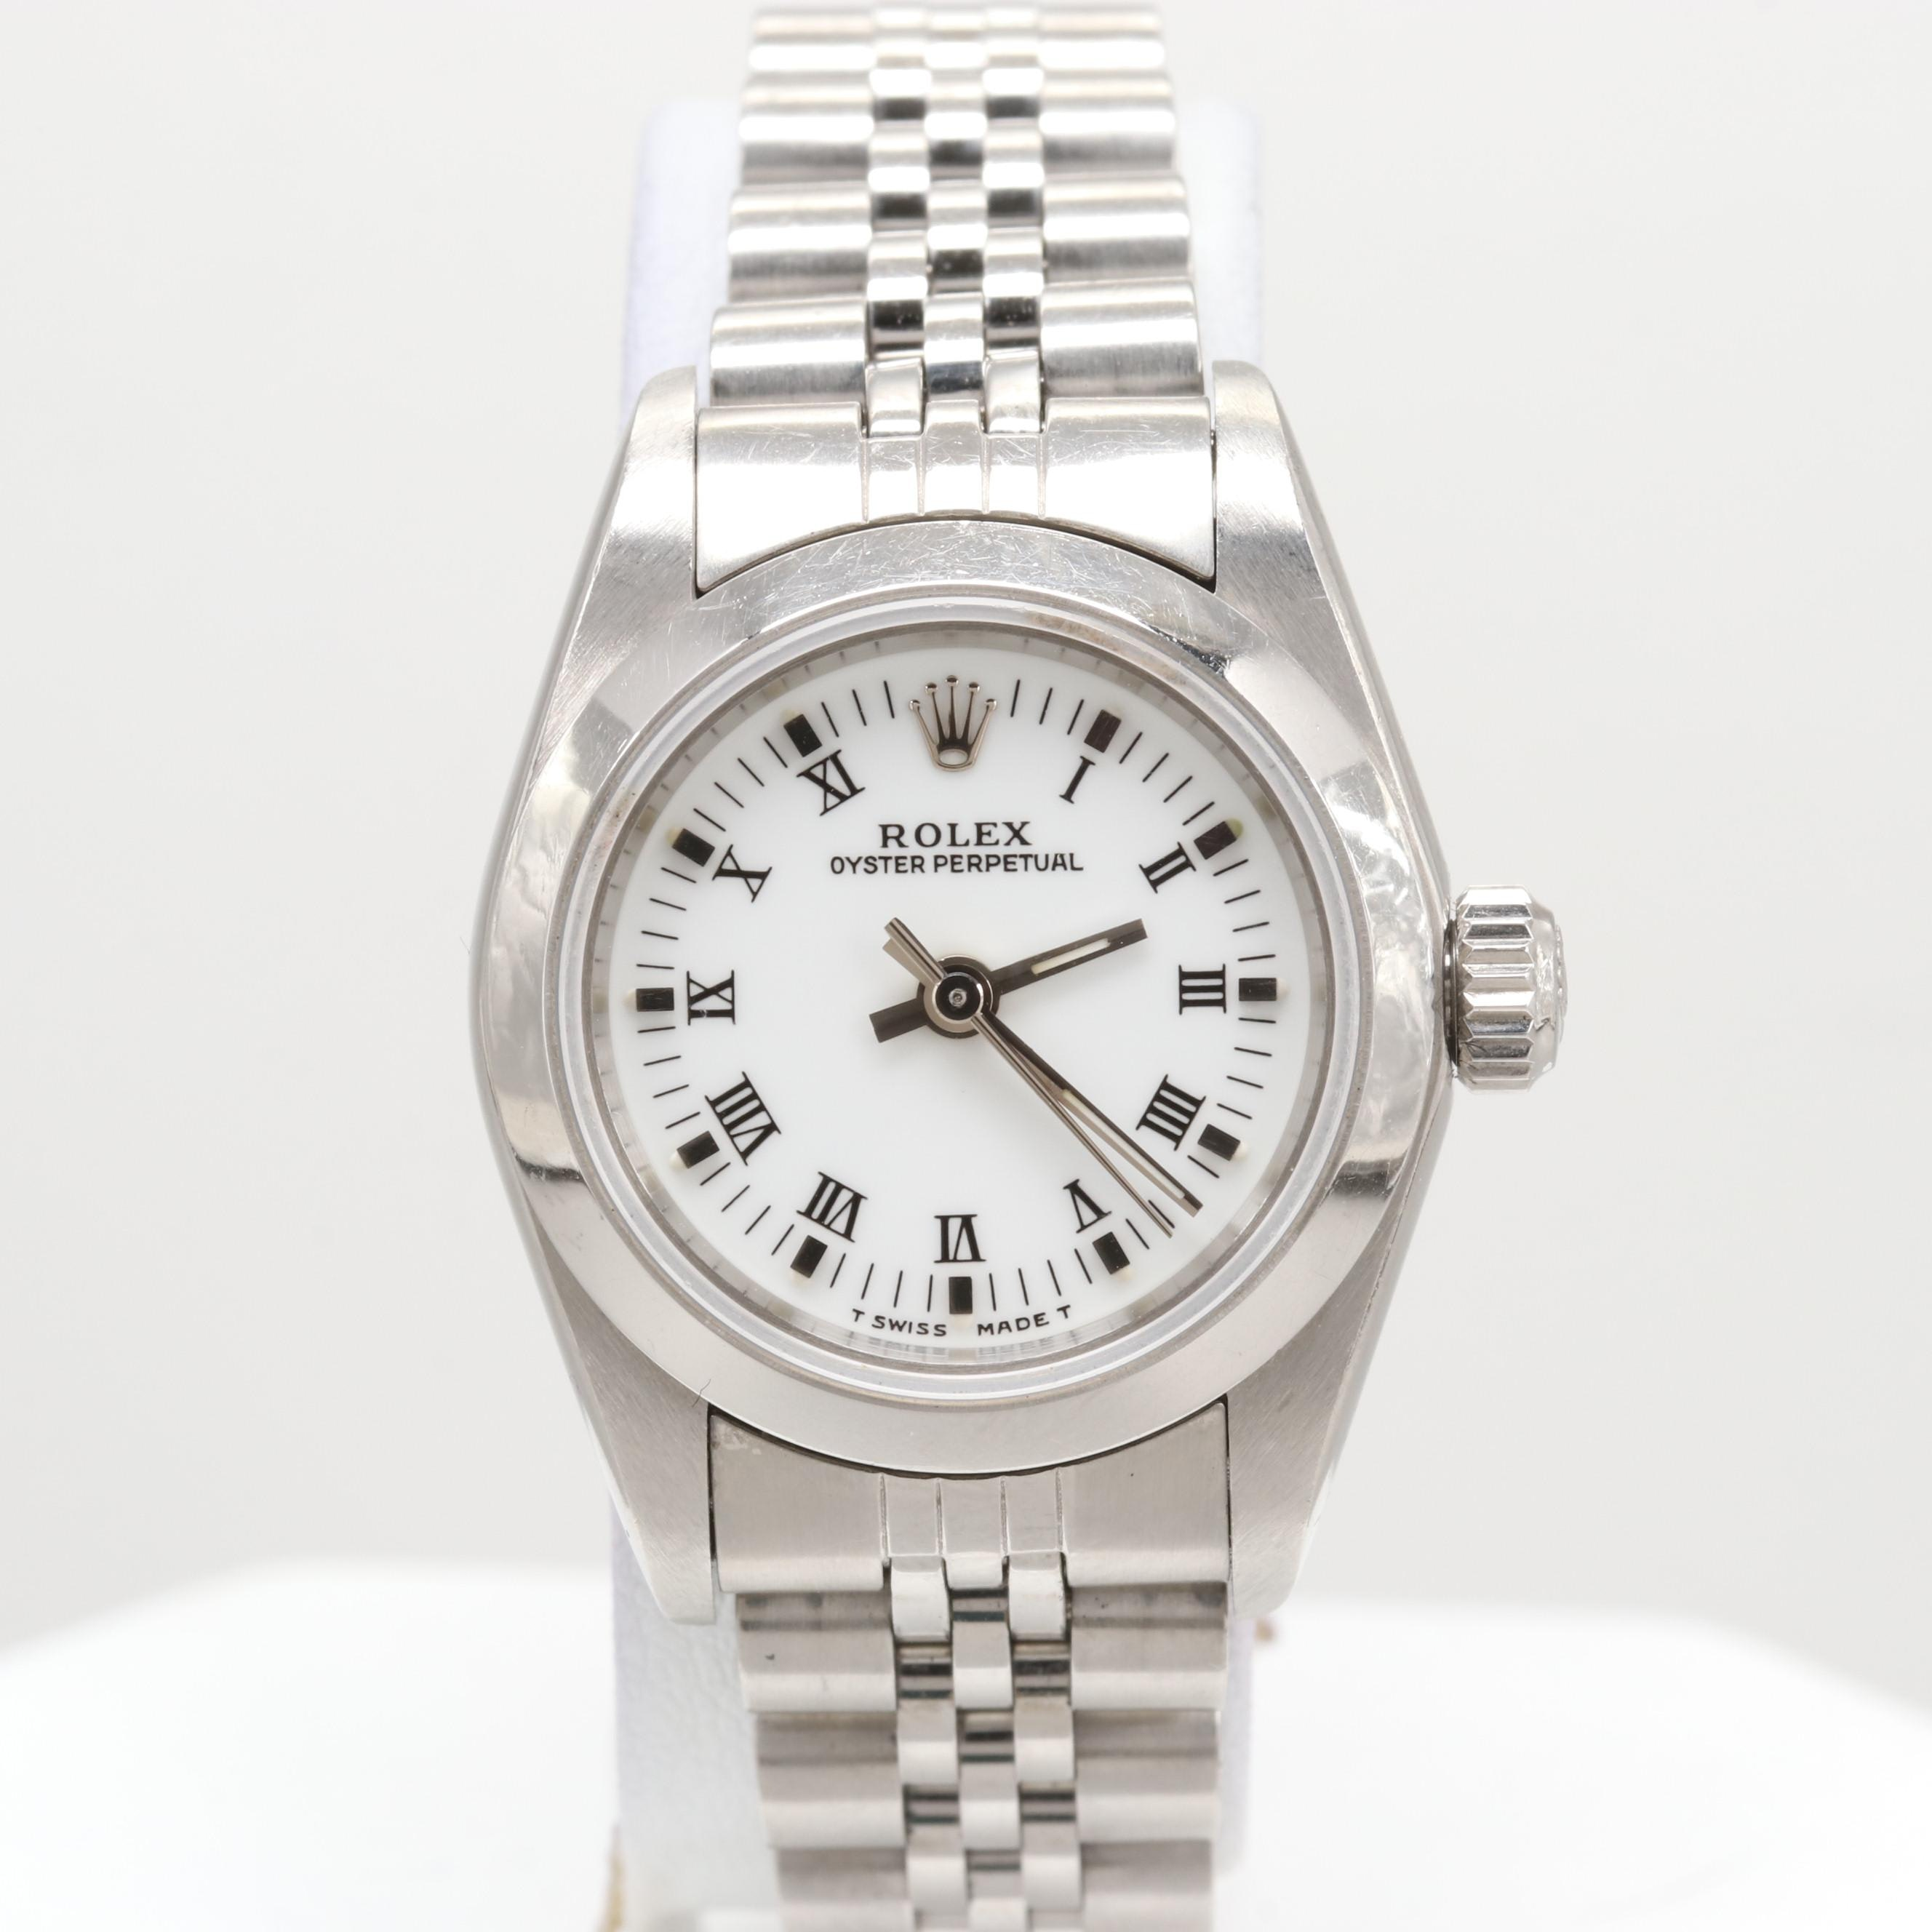 Rolex Oyster Perpetual Automatic Wristwatch, 1995